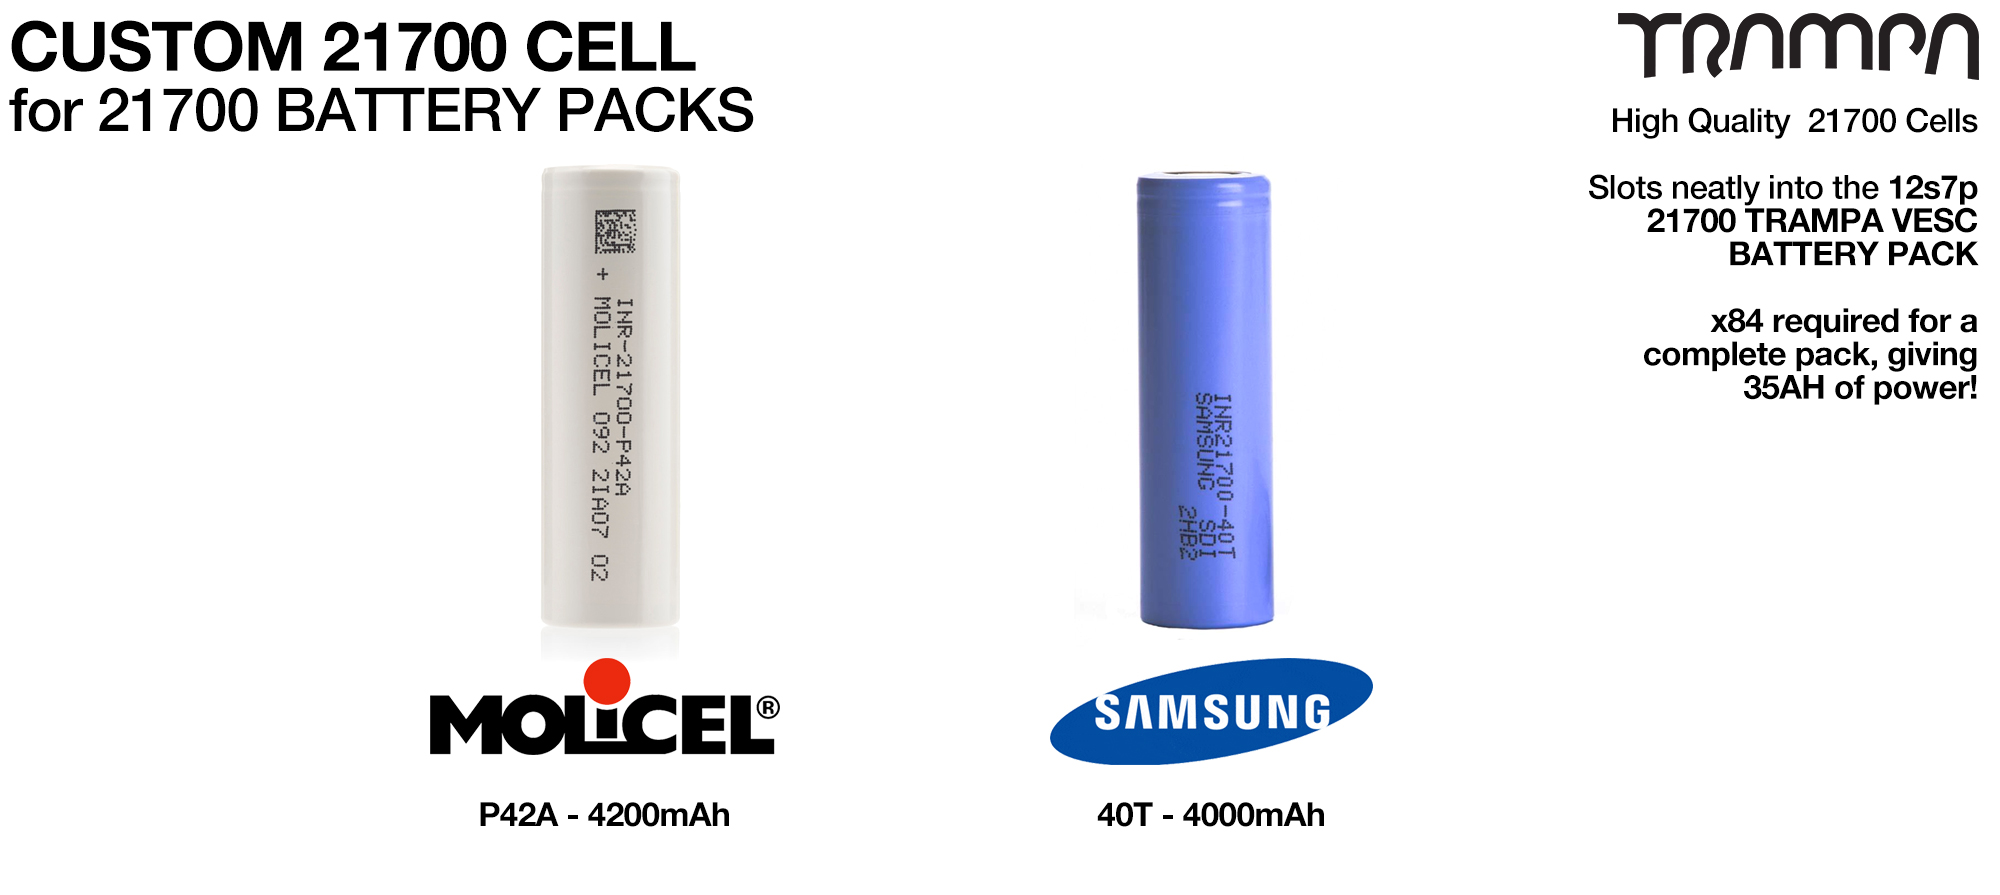 21700 Cells Lion NCA Batteries - SOLD TO UK CUSTOMERS ONLY